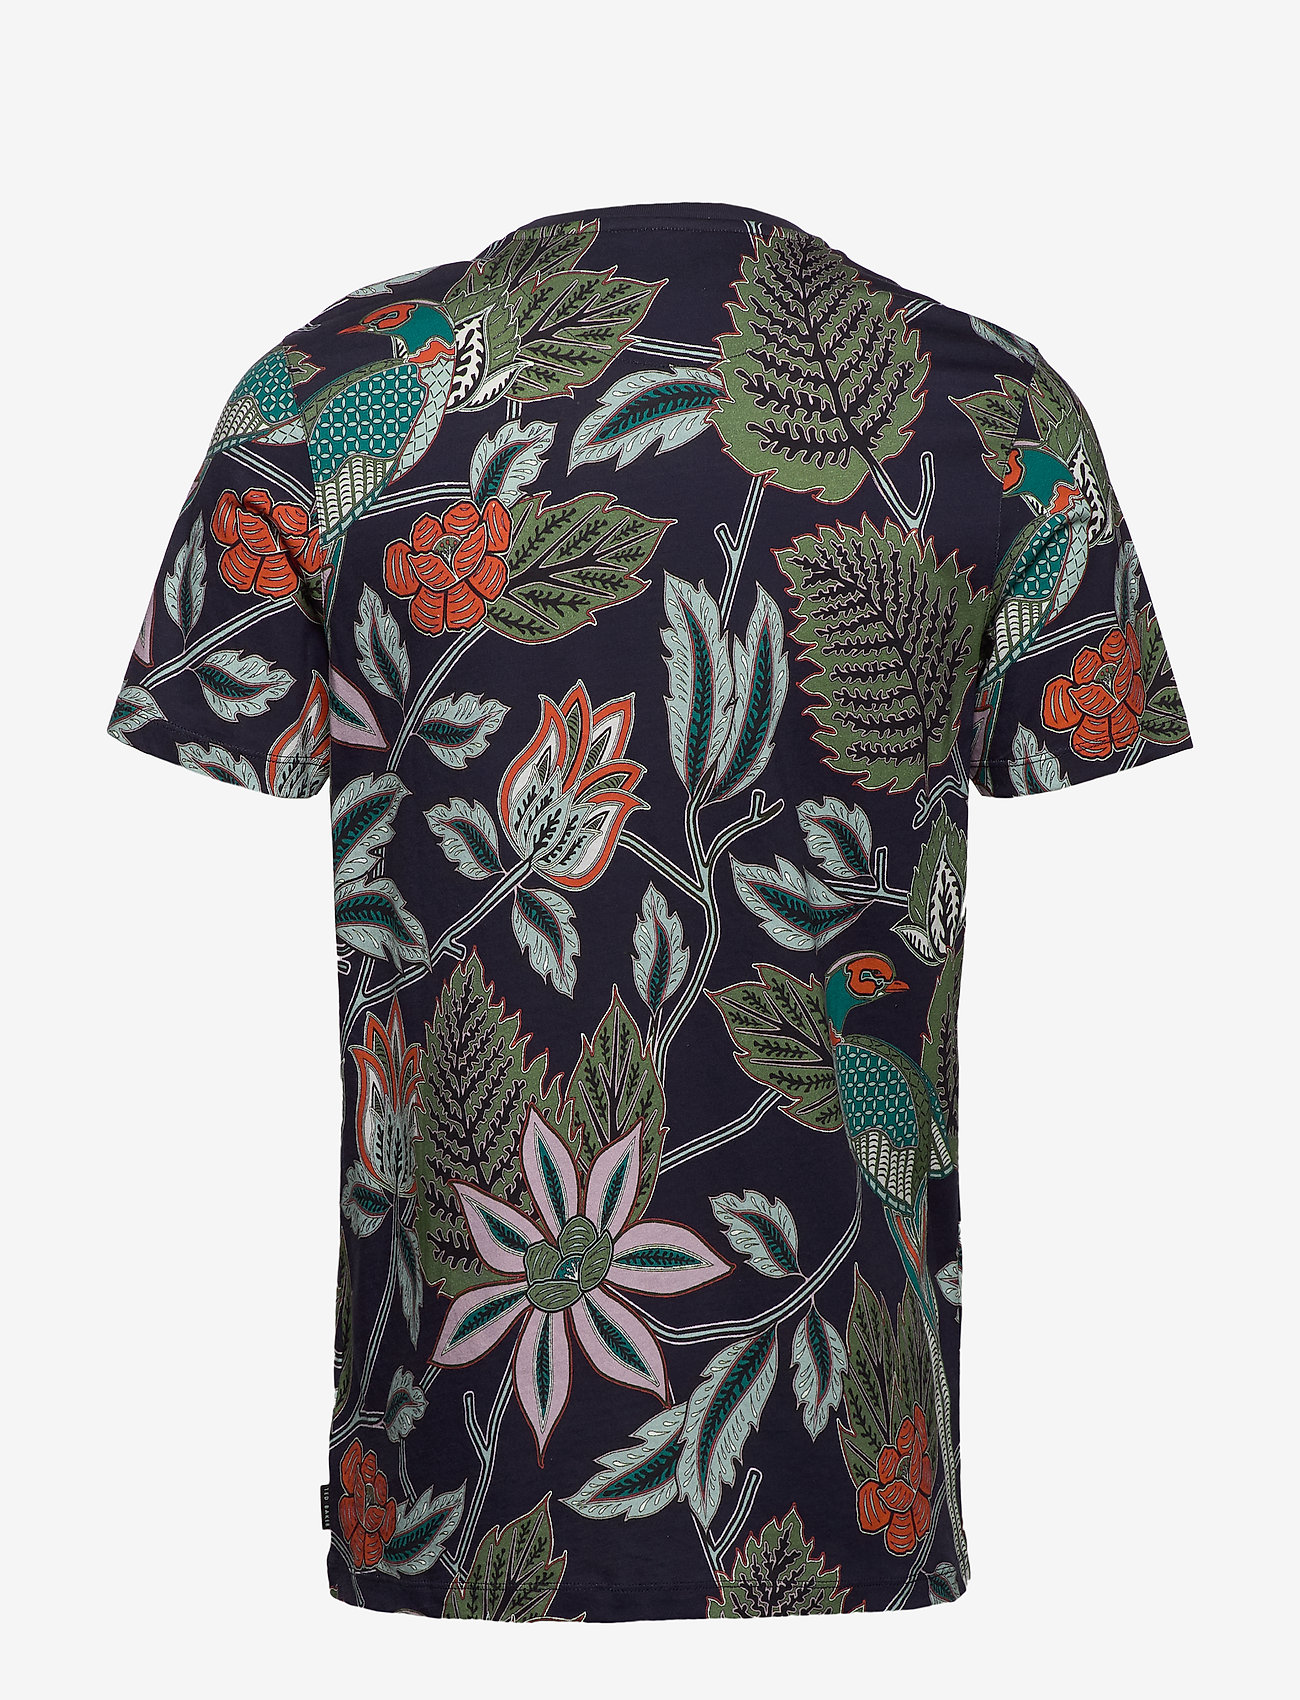 Ted Baker - ARCADE - short-sleeved t-shirts - navy